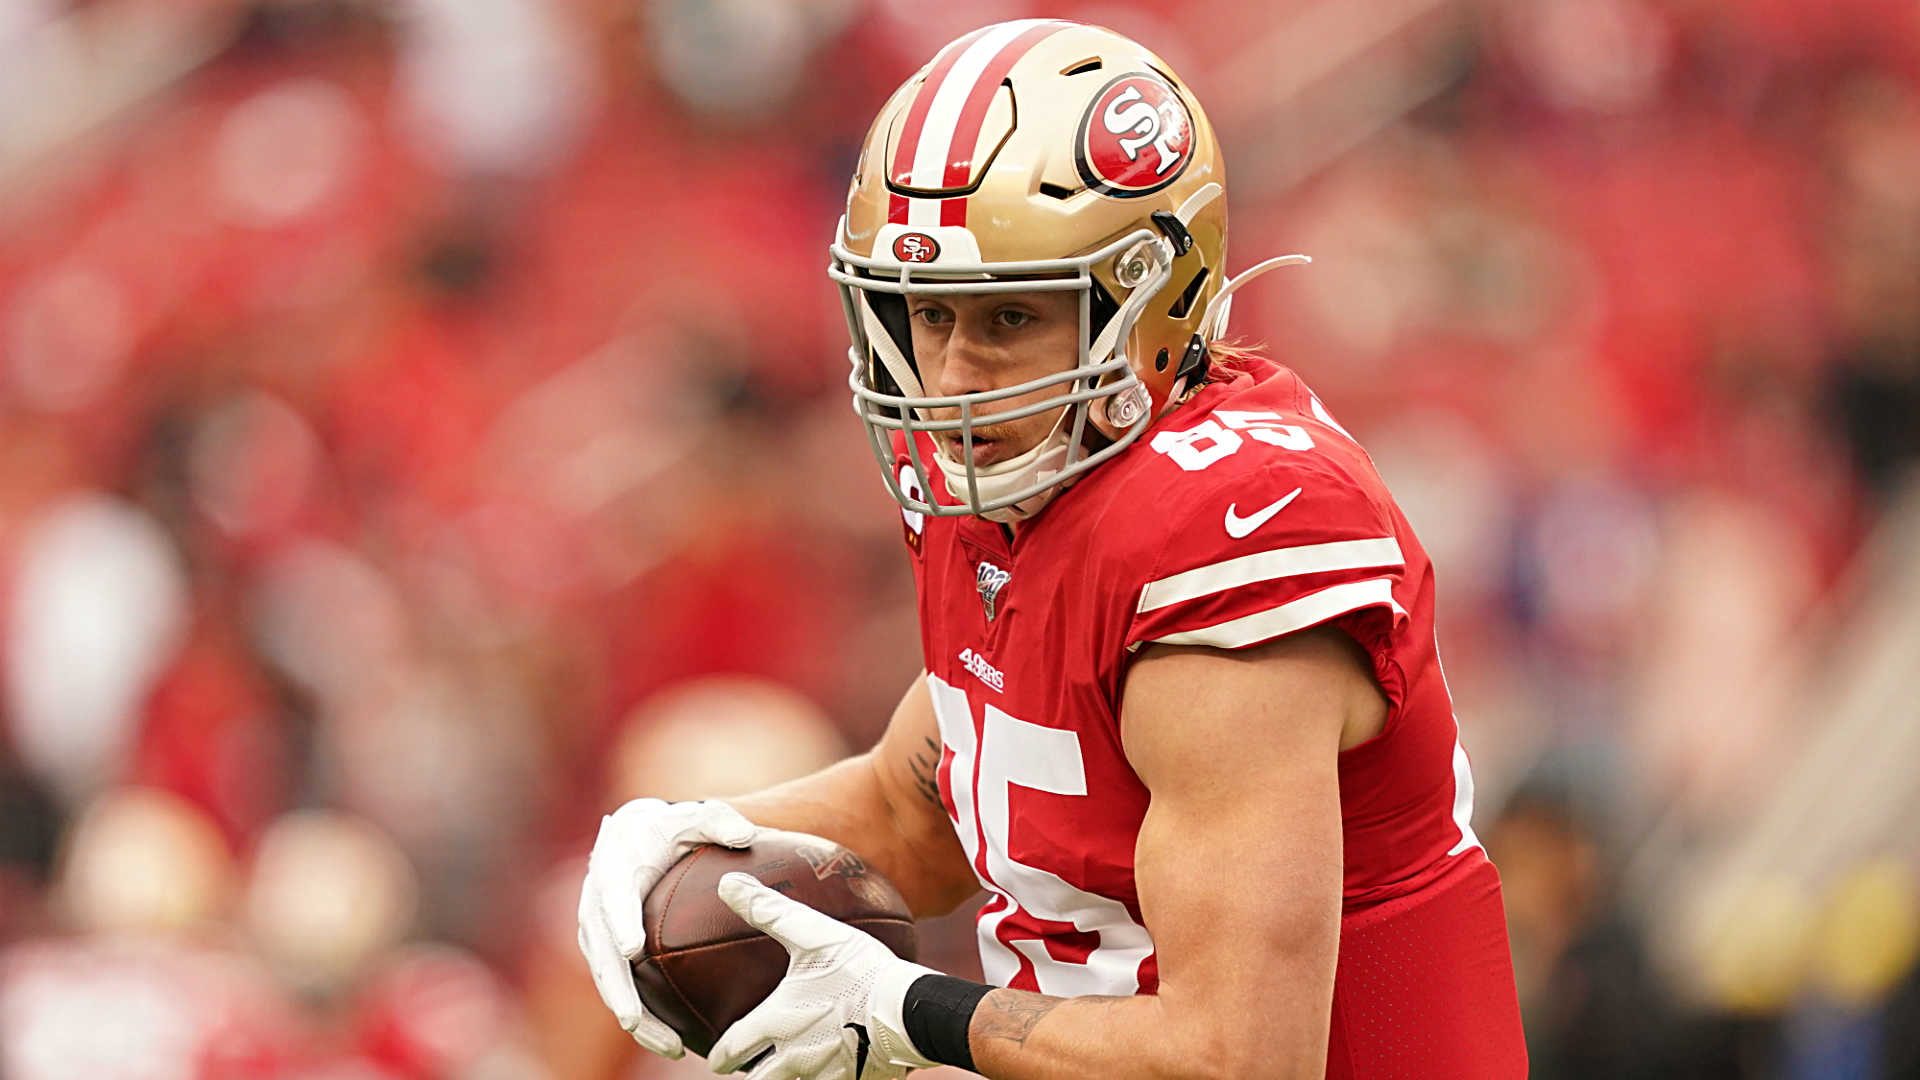 George Kittle doesn't want a tight end contract from the 49ers; he wants 'a George Kittle deal'